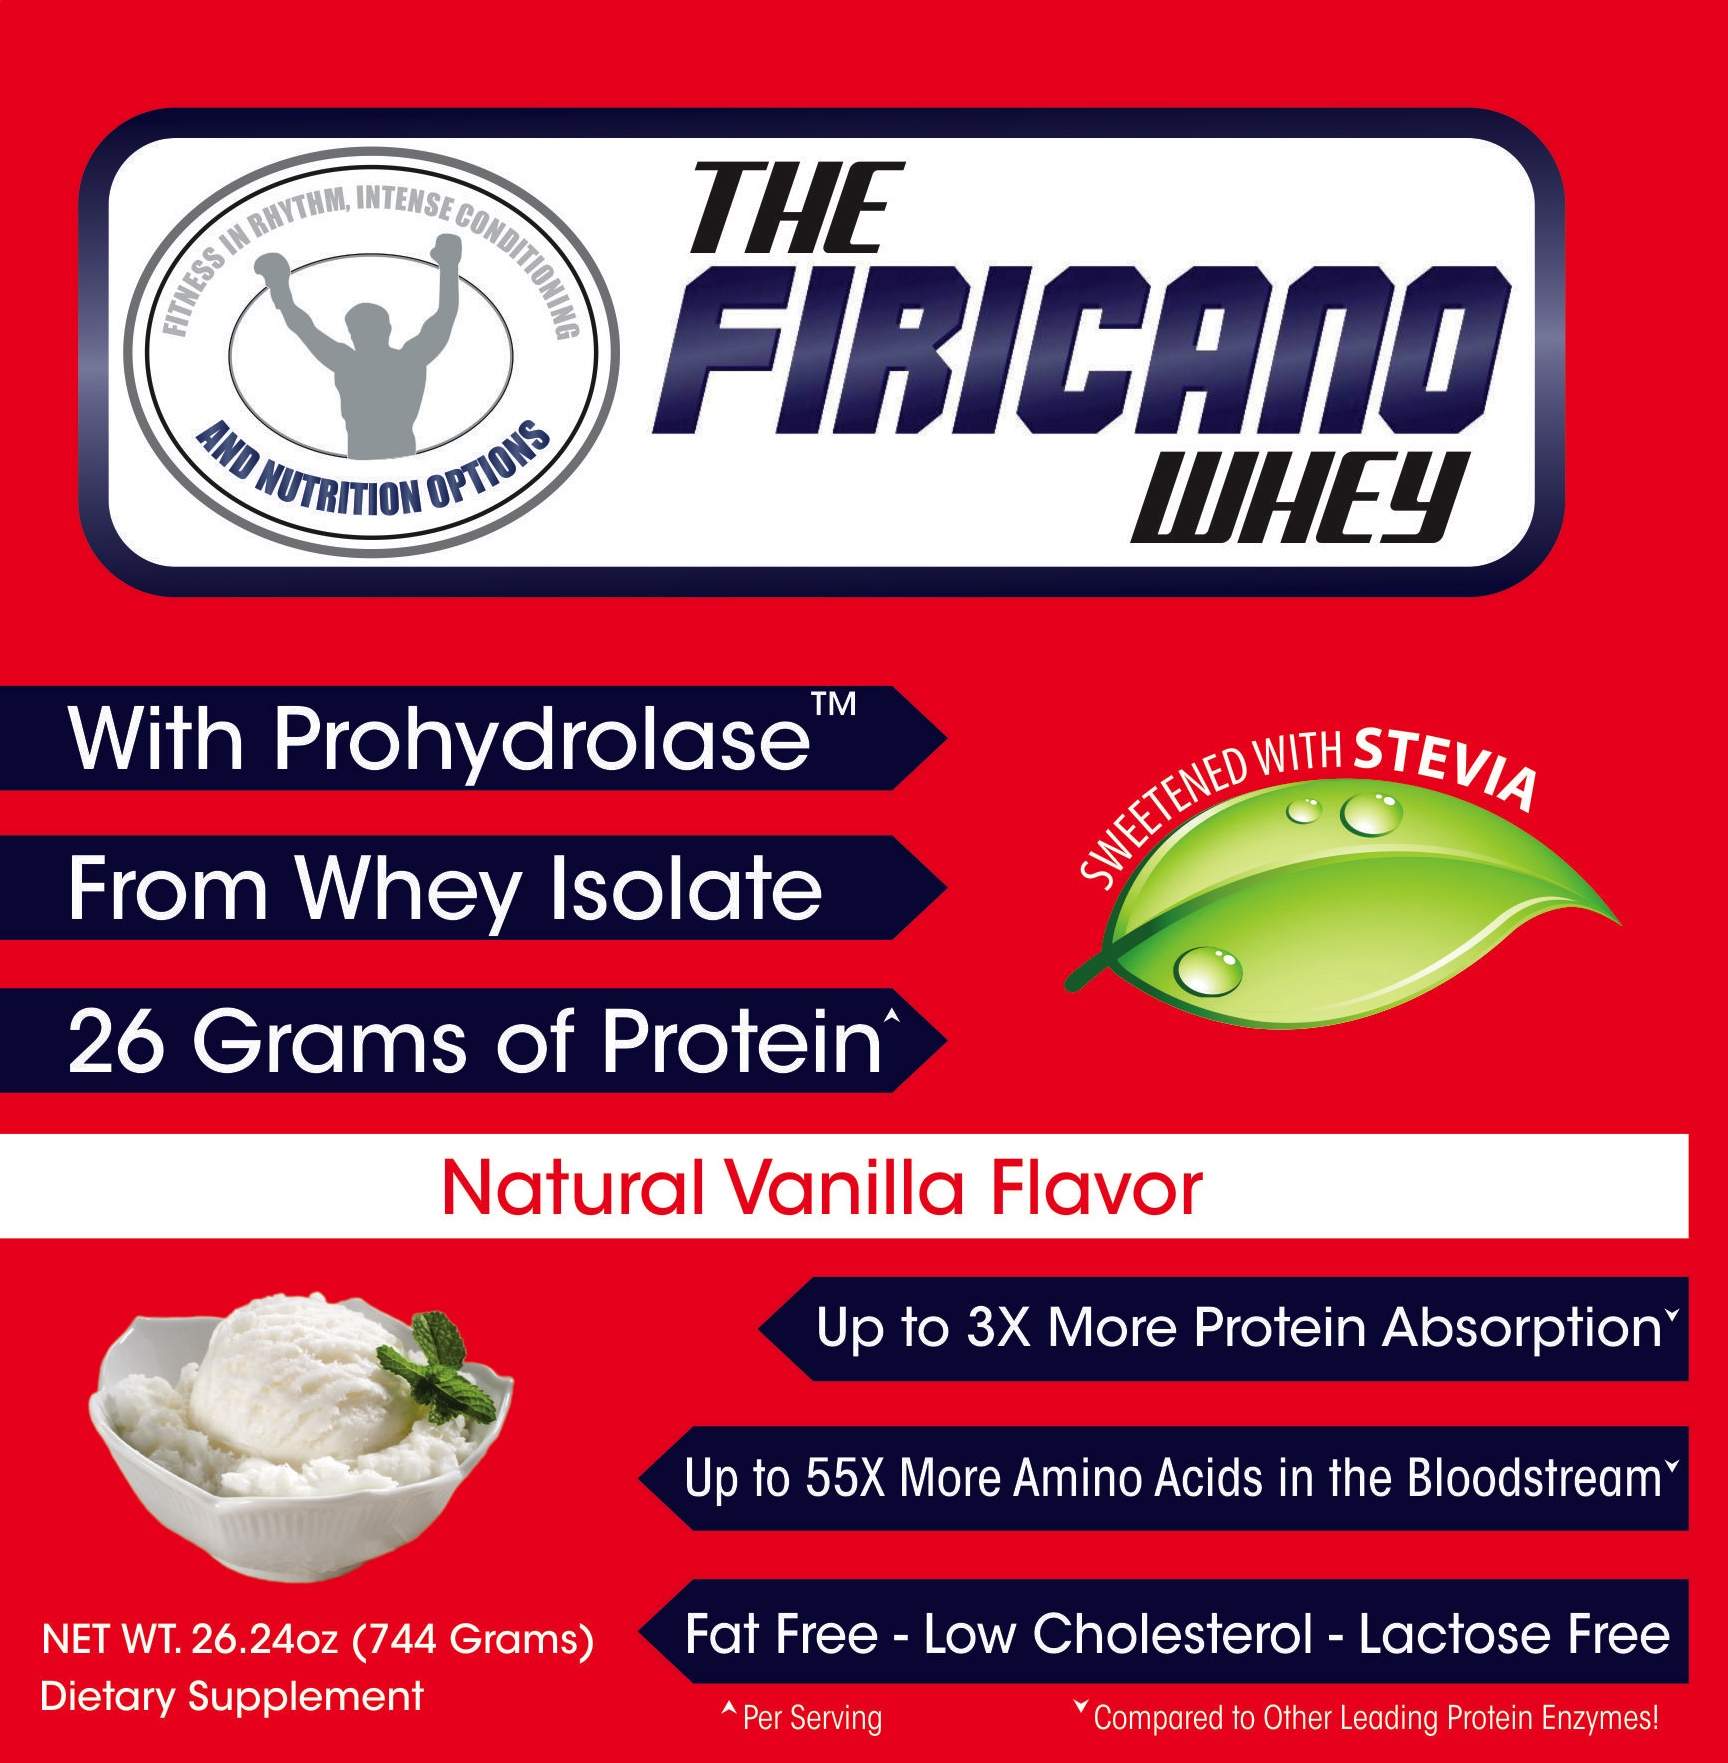 Ingredients - Whey Protein Isolate, Natural Flavors, Xanthan Gum, Prohydrolase, Stevia Leaf Extract, Monk fruit and Sunflower LecithinMACROS: 120 Calories 26g Protein 2g Carbohydrate 0g Fat